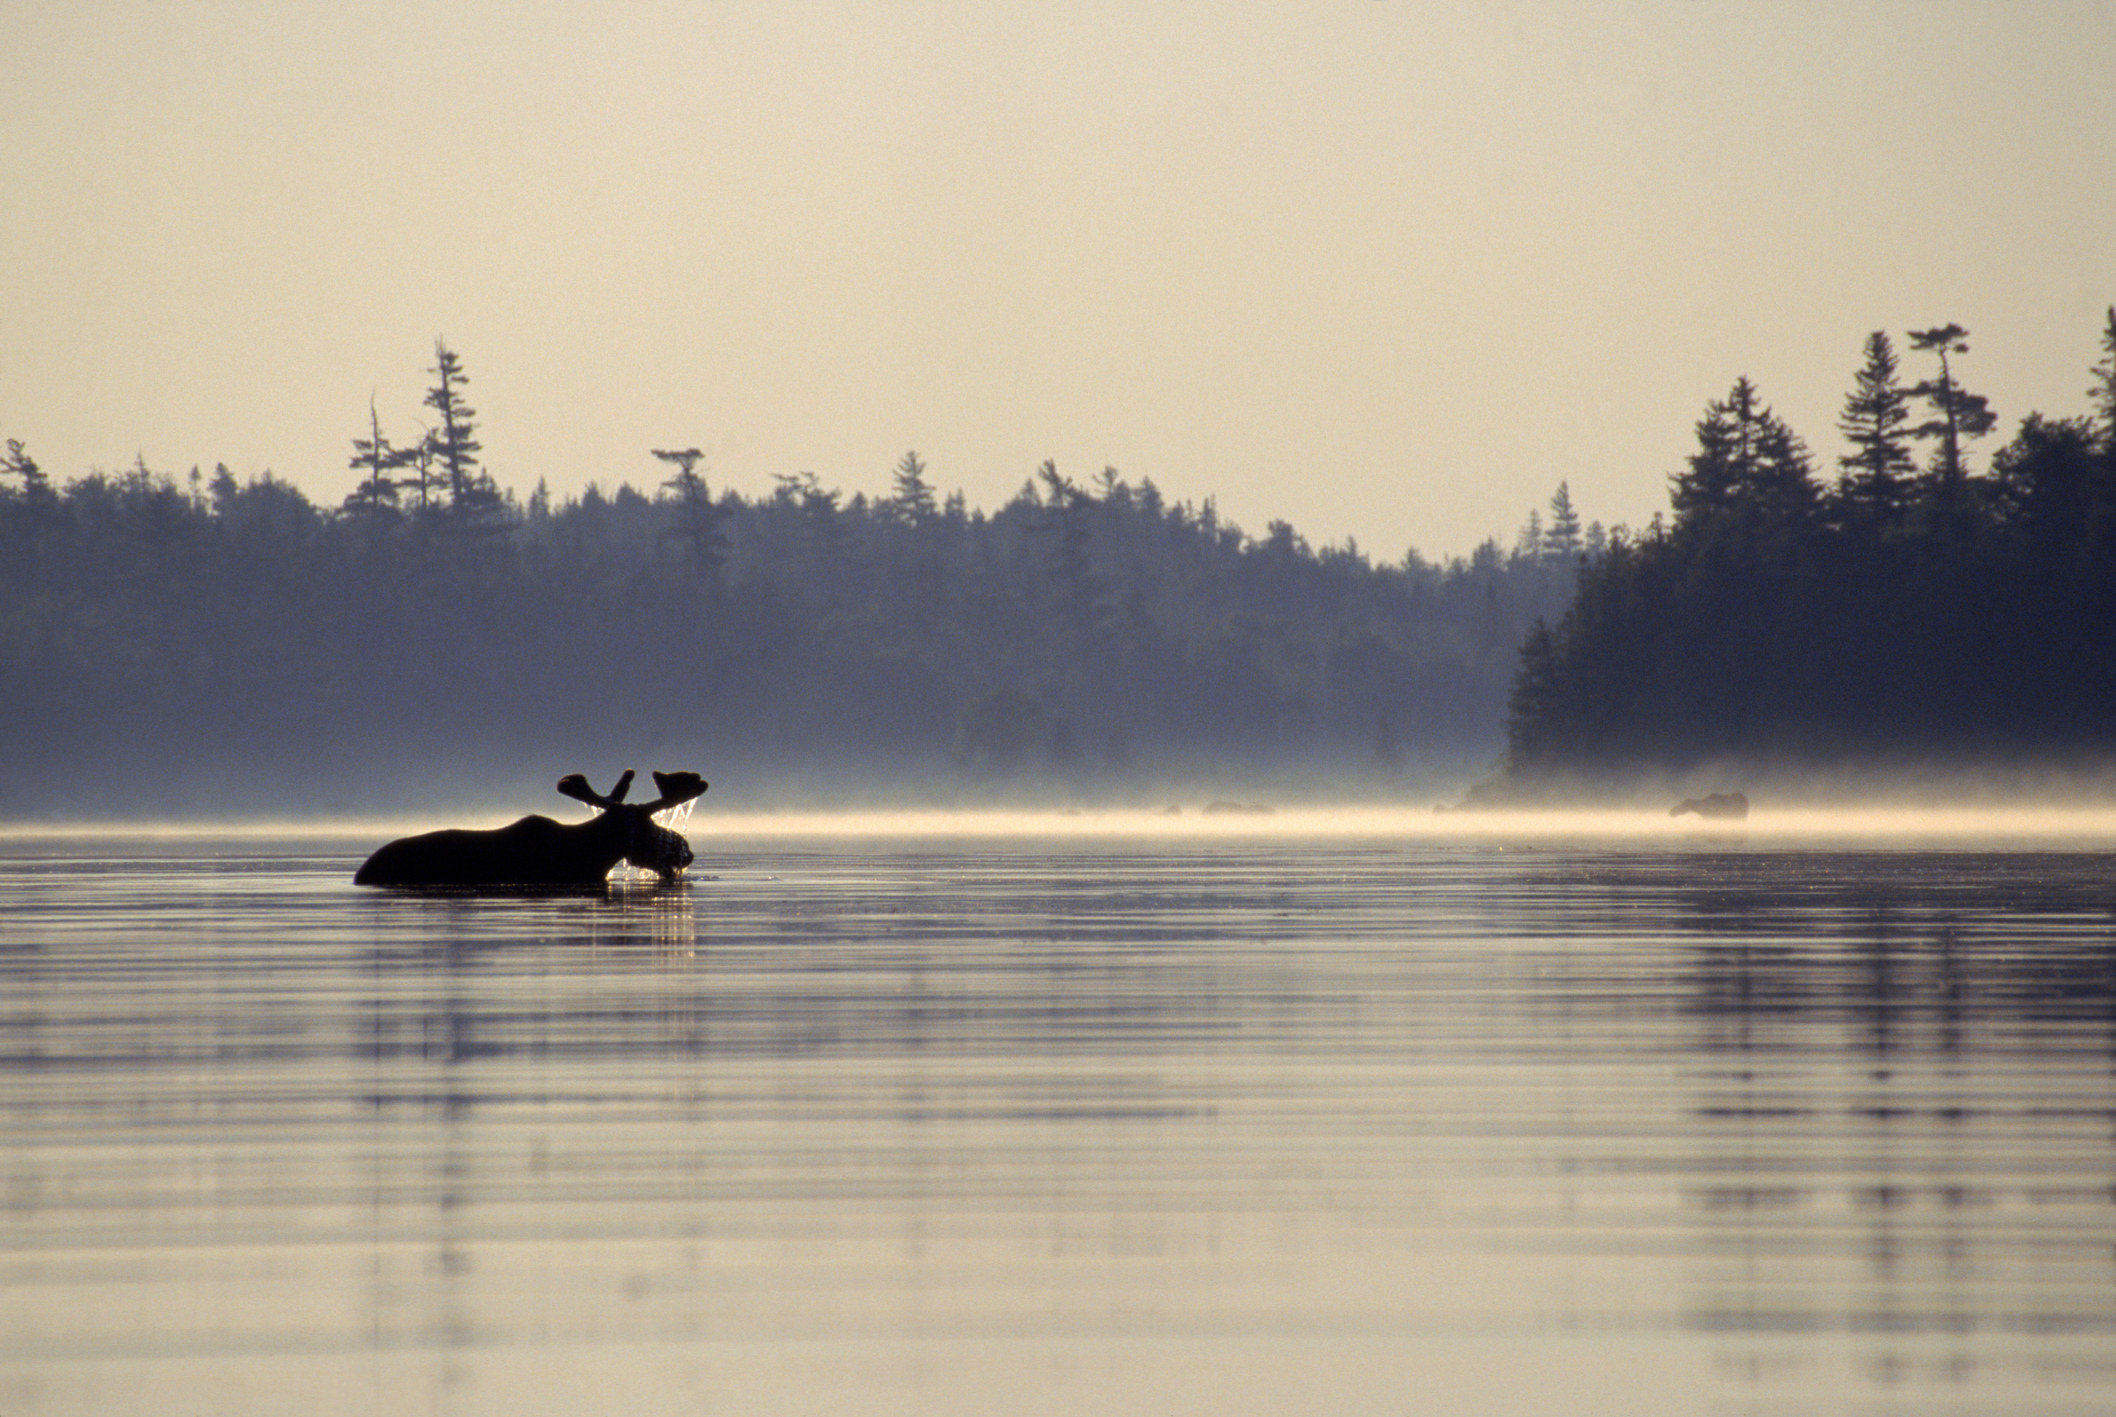 A moose in the water in Maine